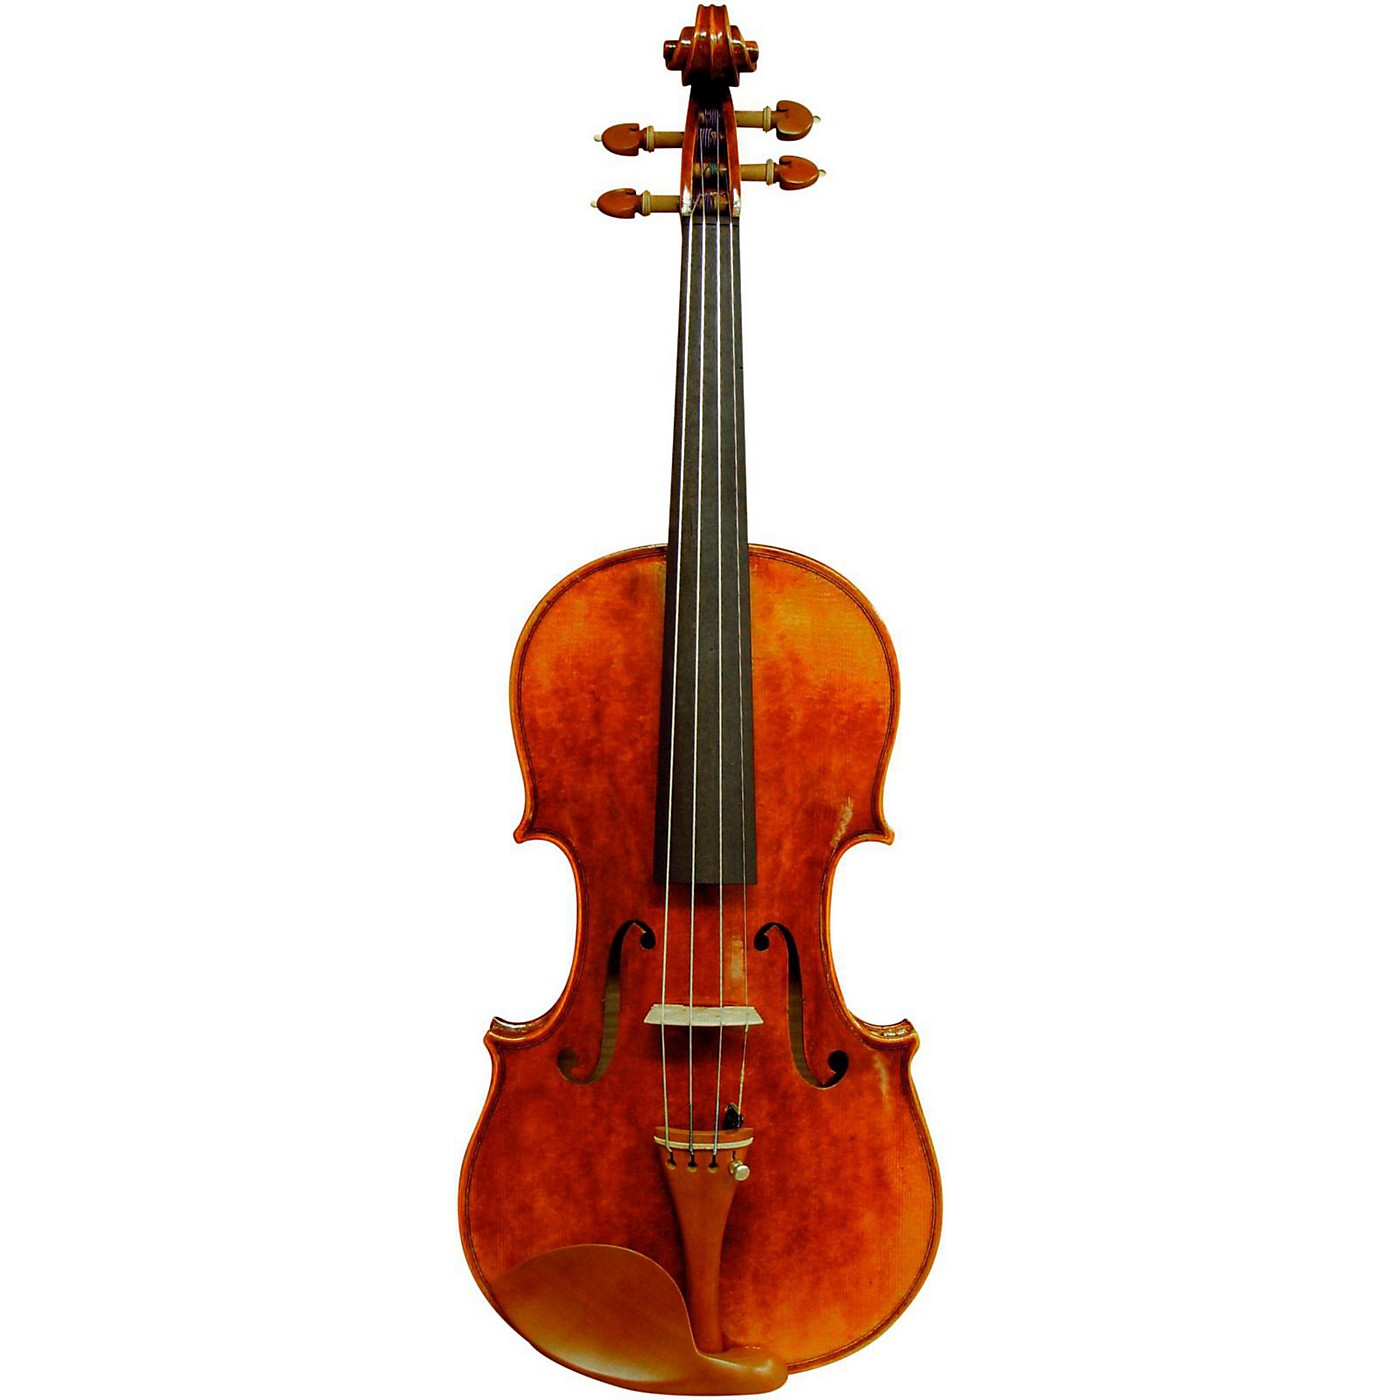 Maple Leaf Strings Cremonese Craftsman Collection Violin thumbnail